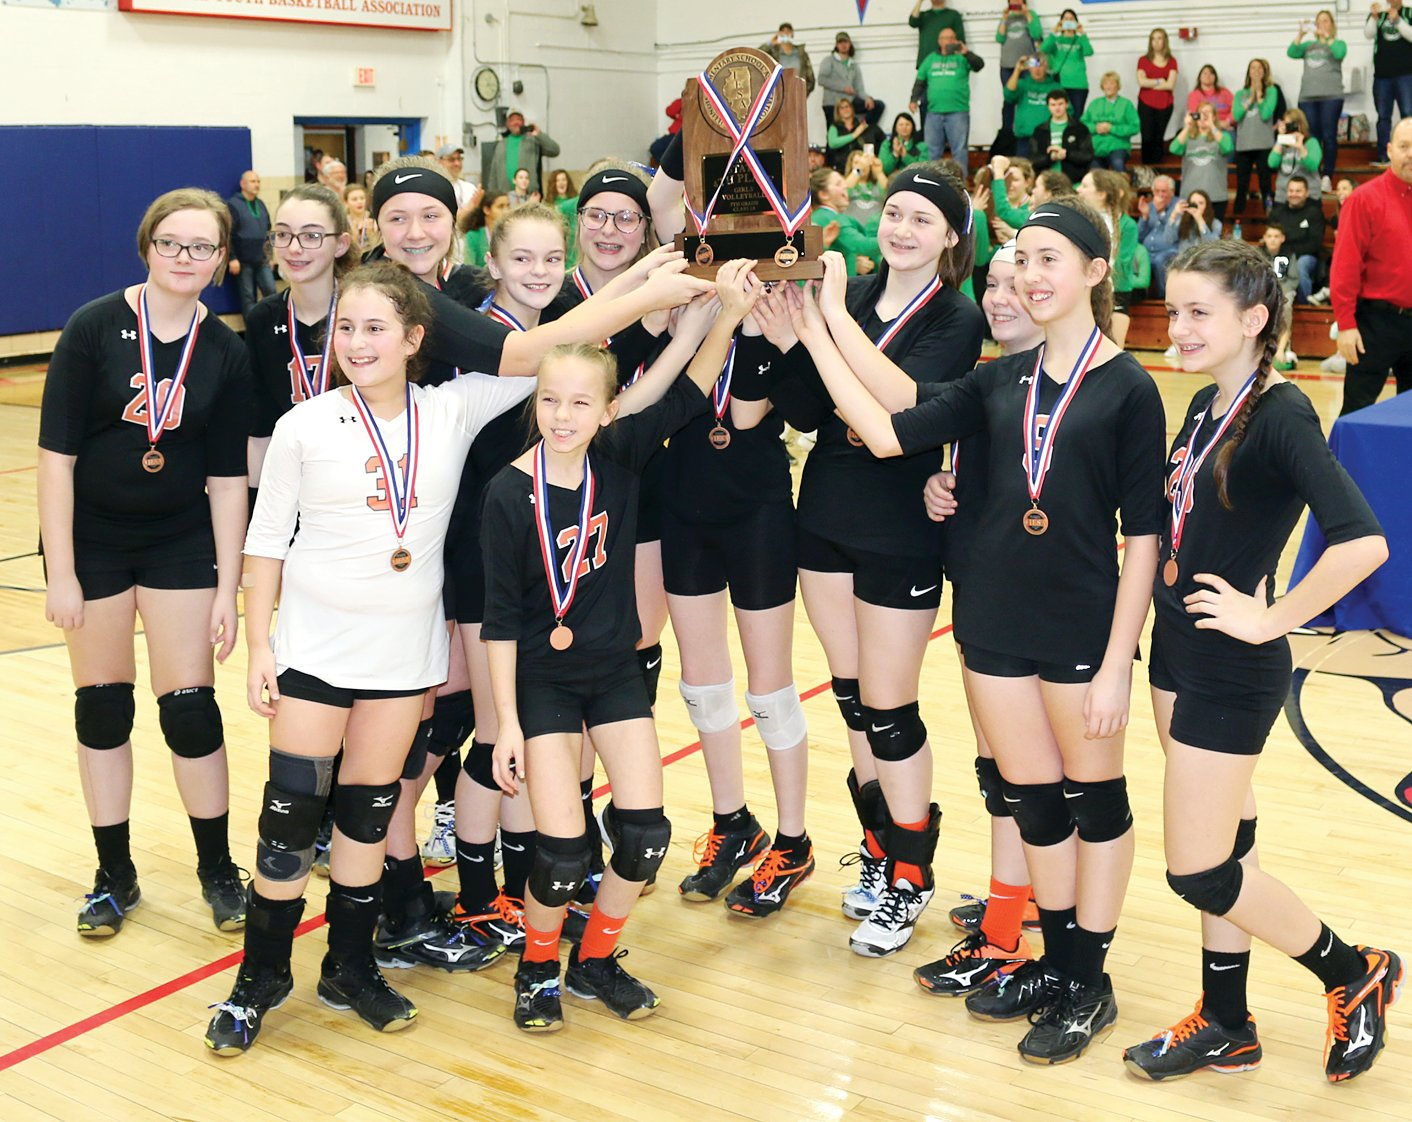 Members of the Lincolnwood Junior High seventh grade volleyball team celebrate with their fourth place trophy after their final game at the IESA Class 2A State Tournament on Saturday, March 9, in Pawnee. The Lady Knights capped off a spectacular season with a 24-7 record and the second IESA volleyball state trophy in the school's history.